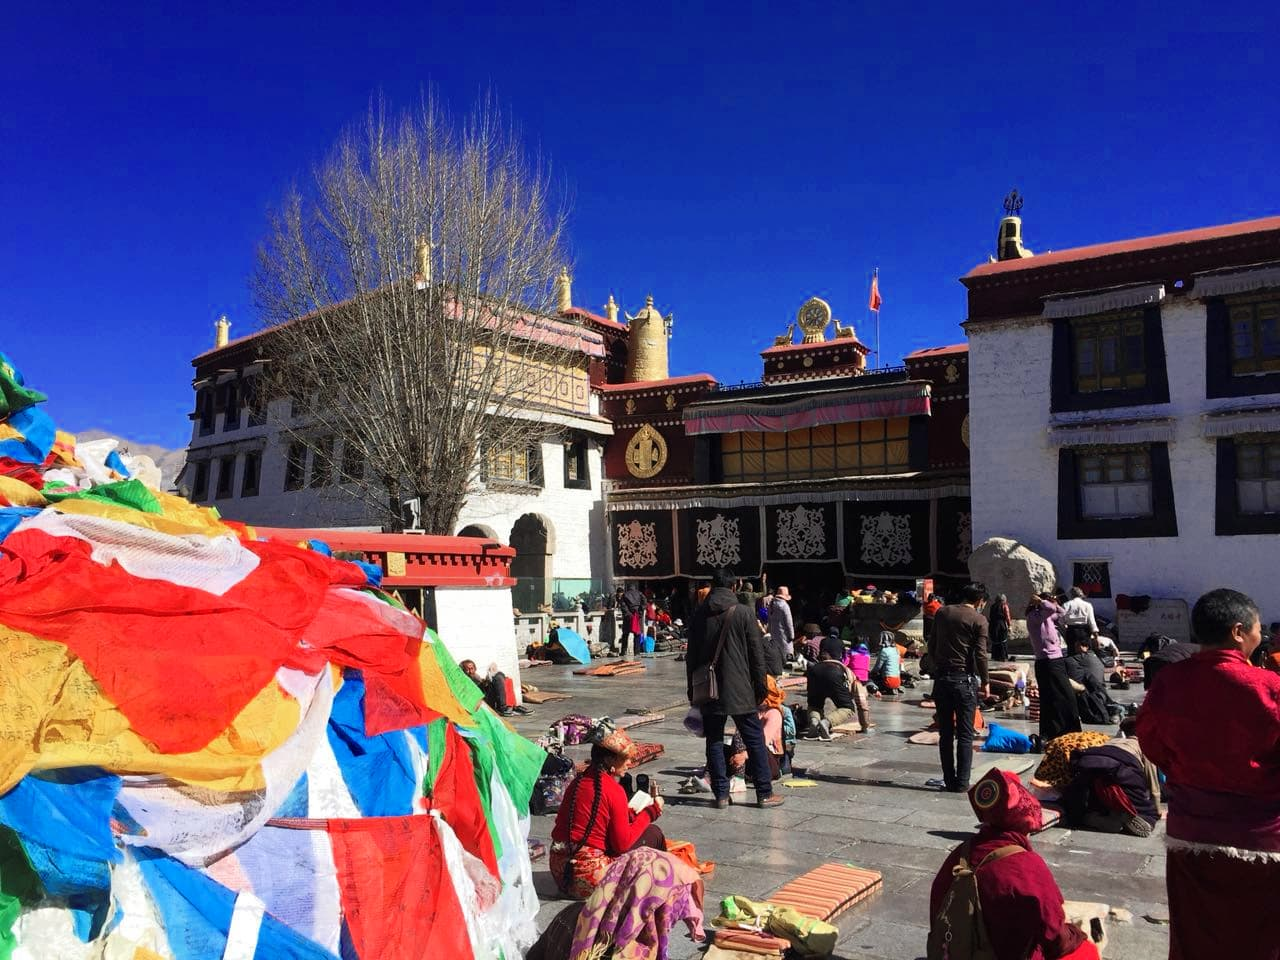 Bakhor Square in front of the Jokhang Temple in Tibet